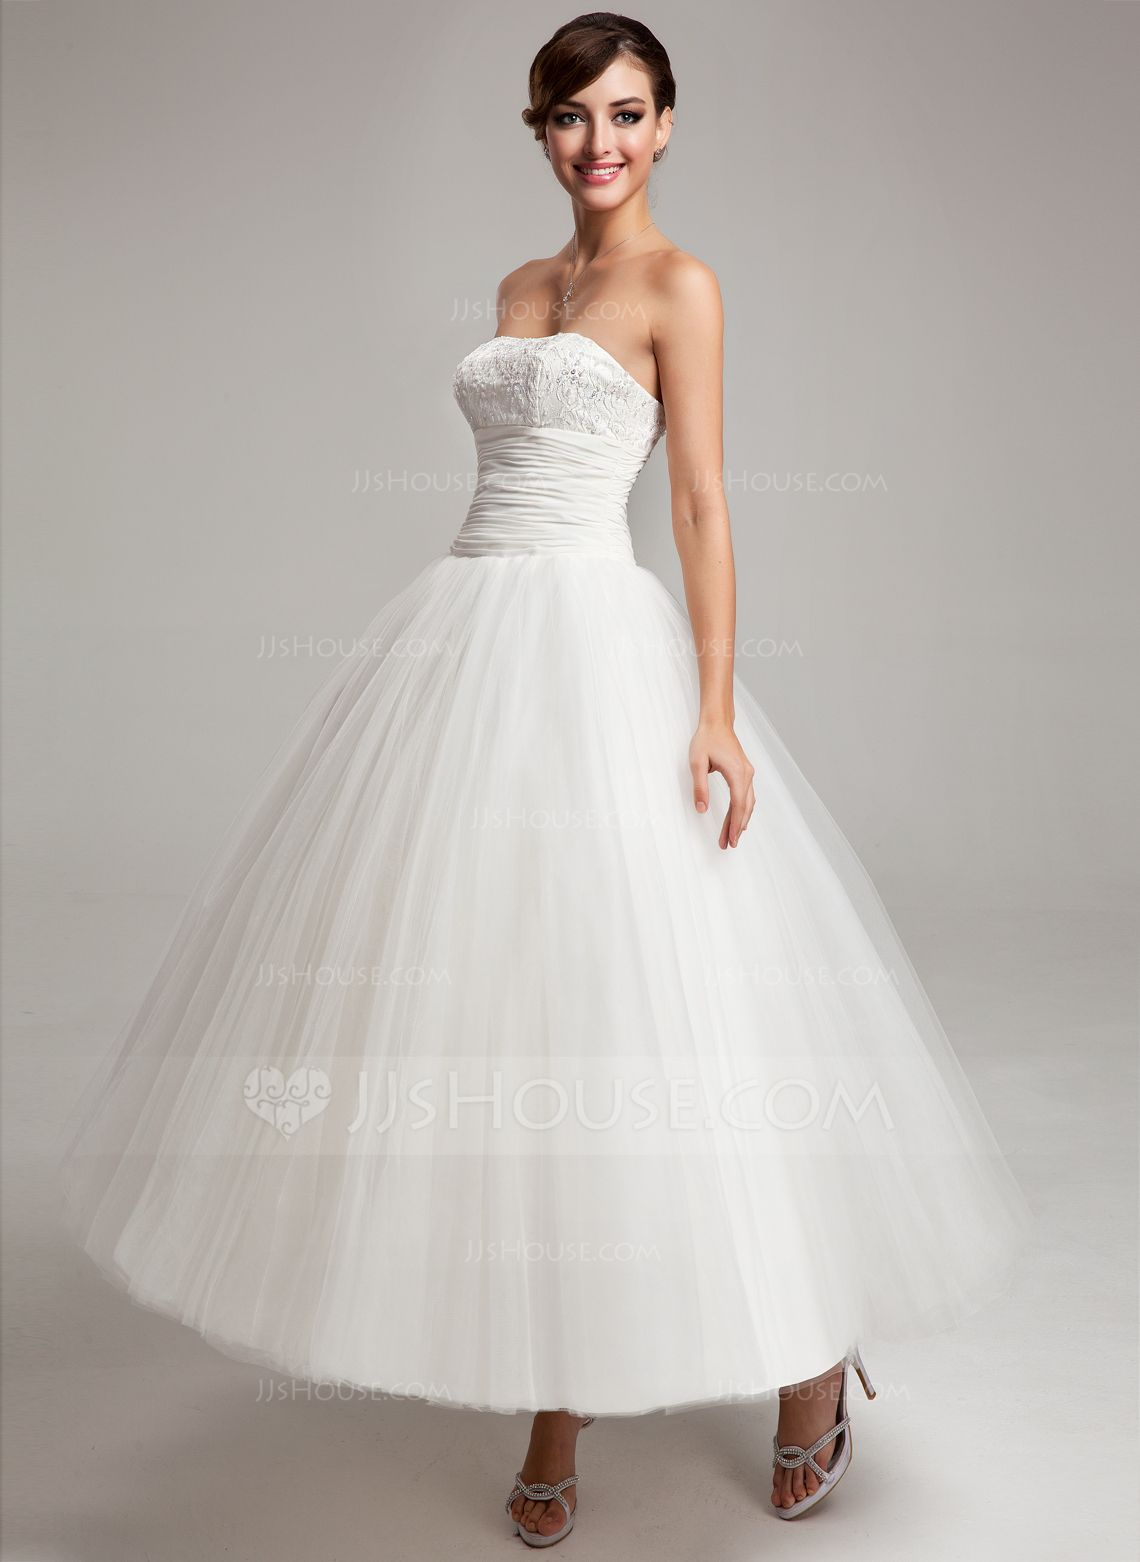 US$ 17.17] Ball-Gown Sweetheart Ankle-Length Chiffon Tulle